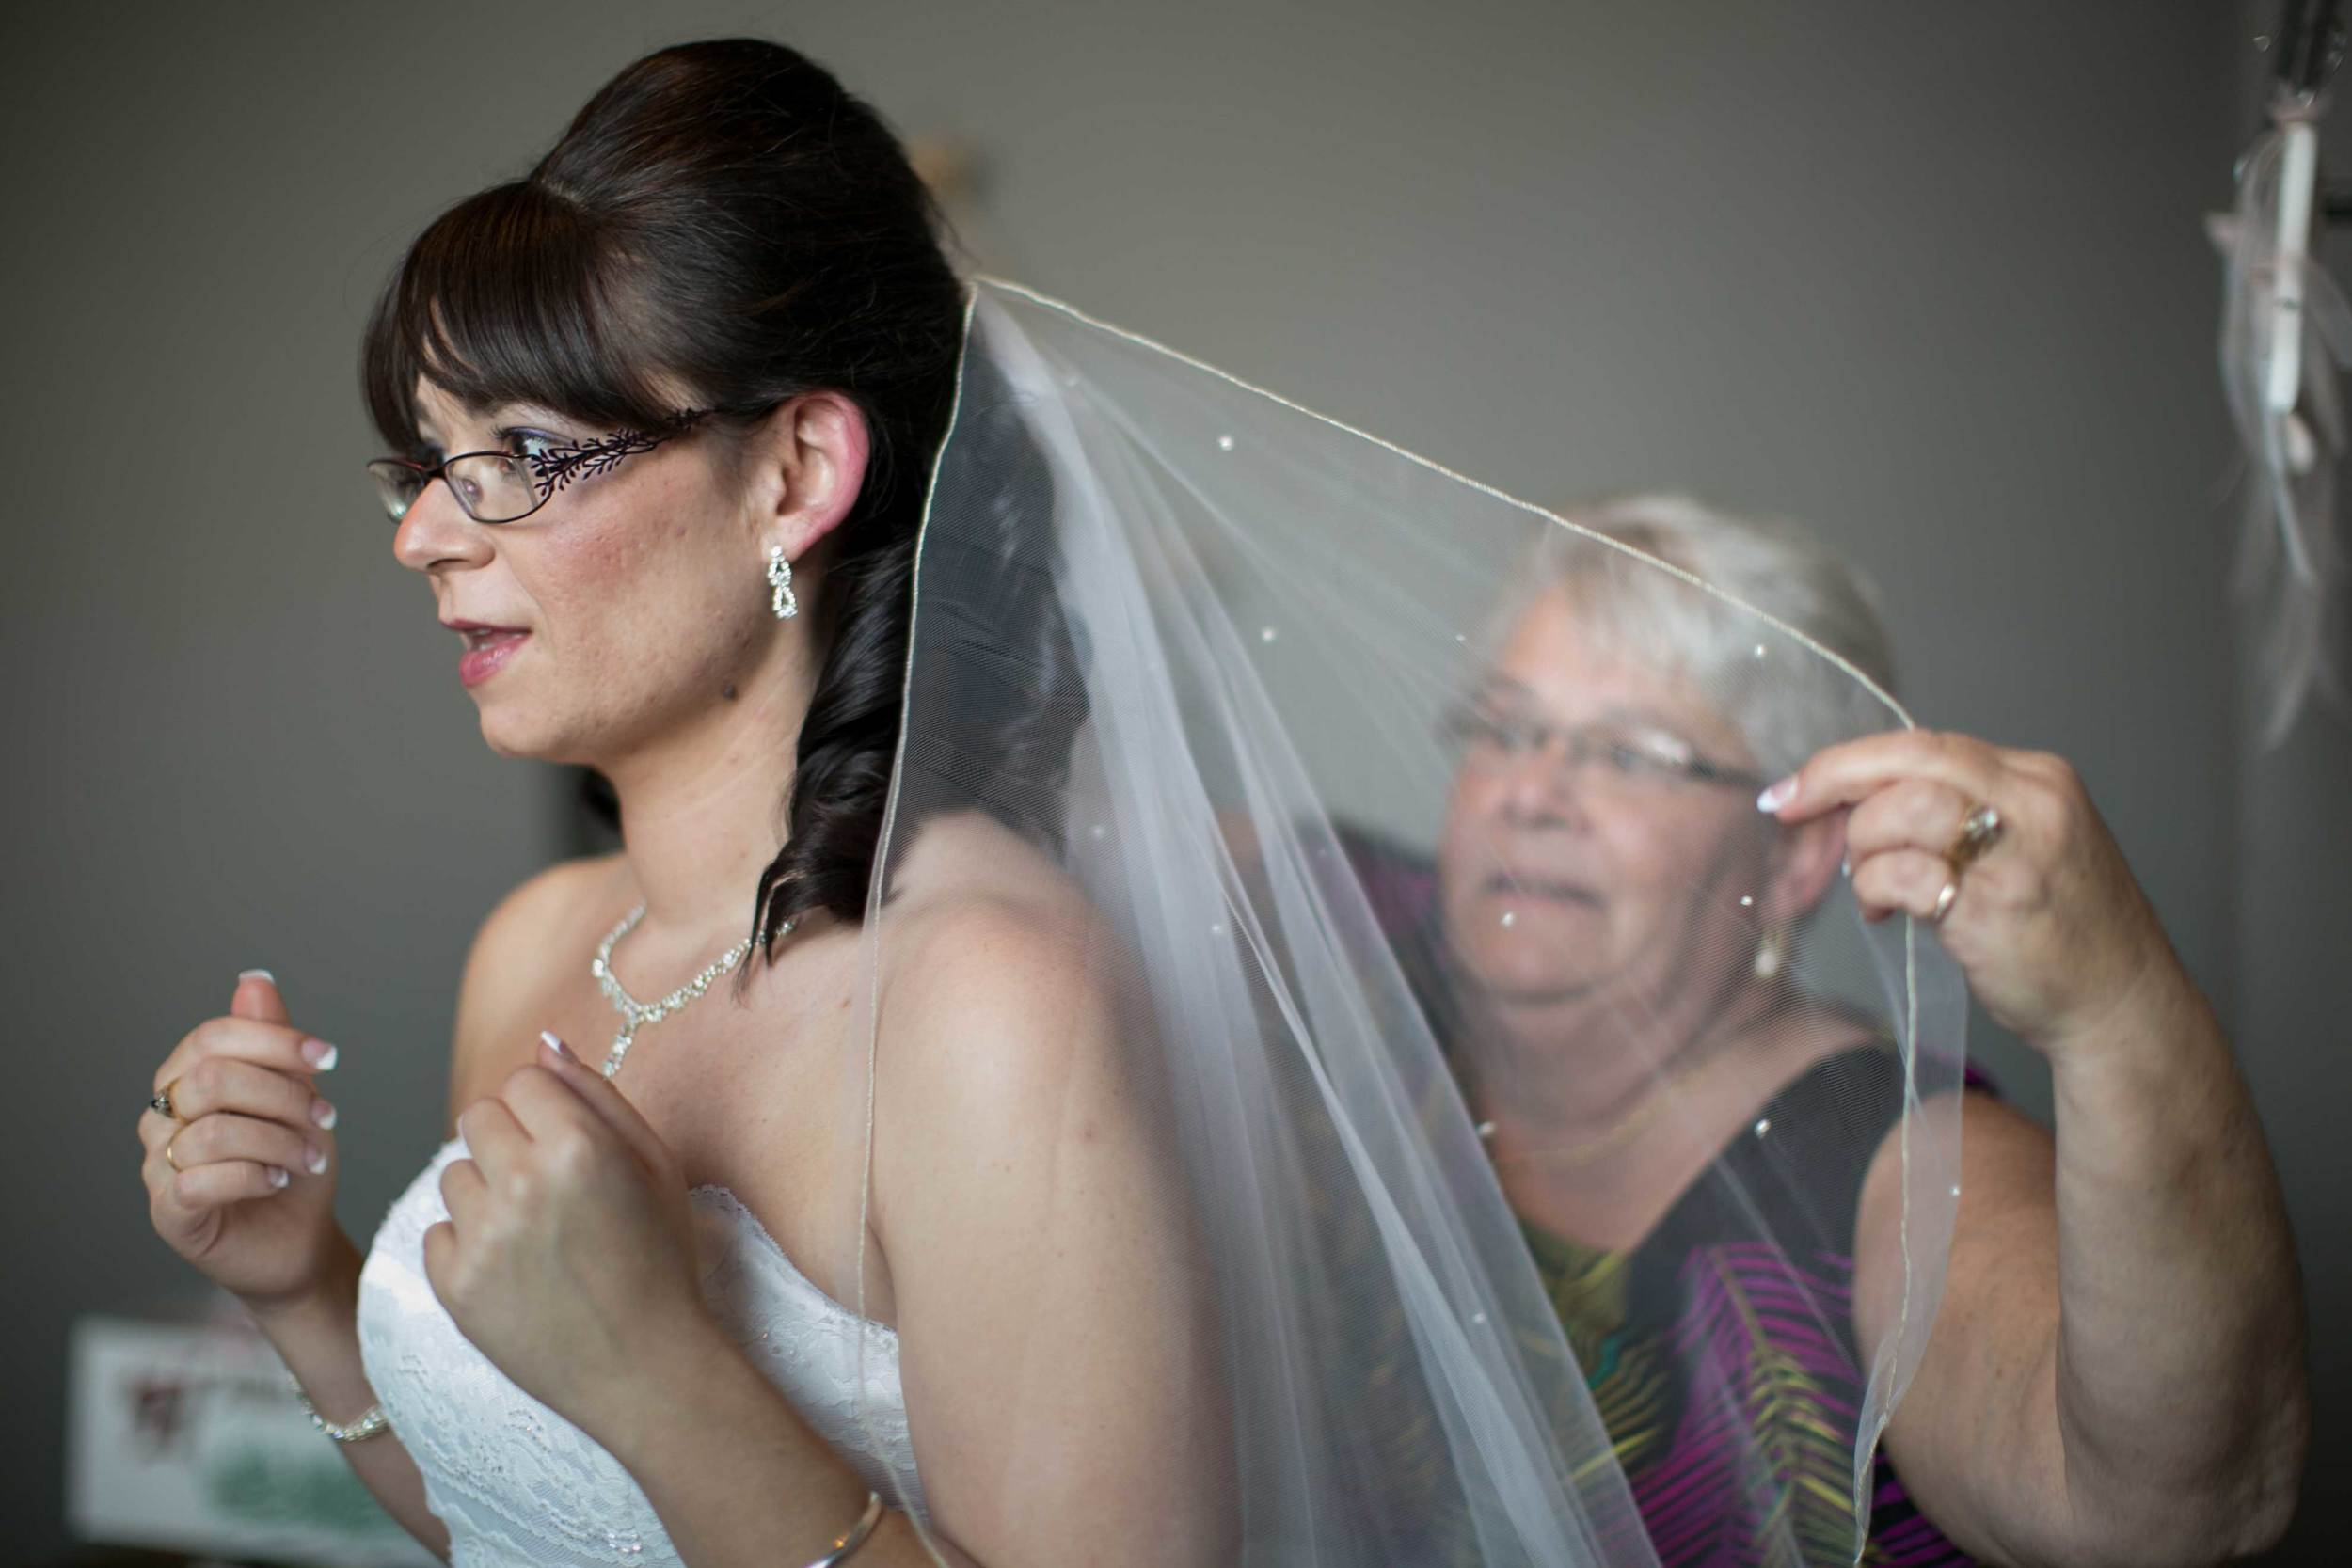 11, 12 & 13. THREE BRIDES ADJUST THEIR CHOSEN HEADWEAR ... A VEIL....